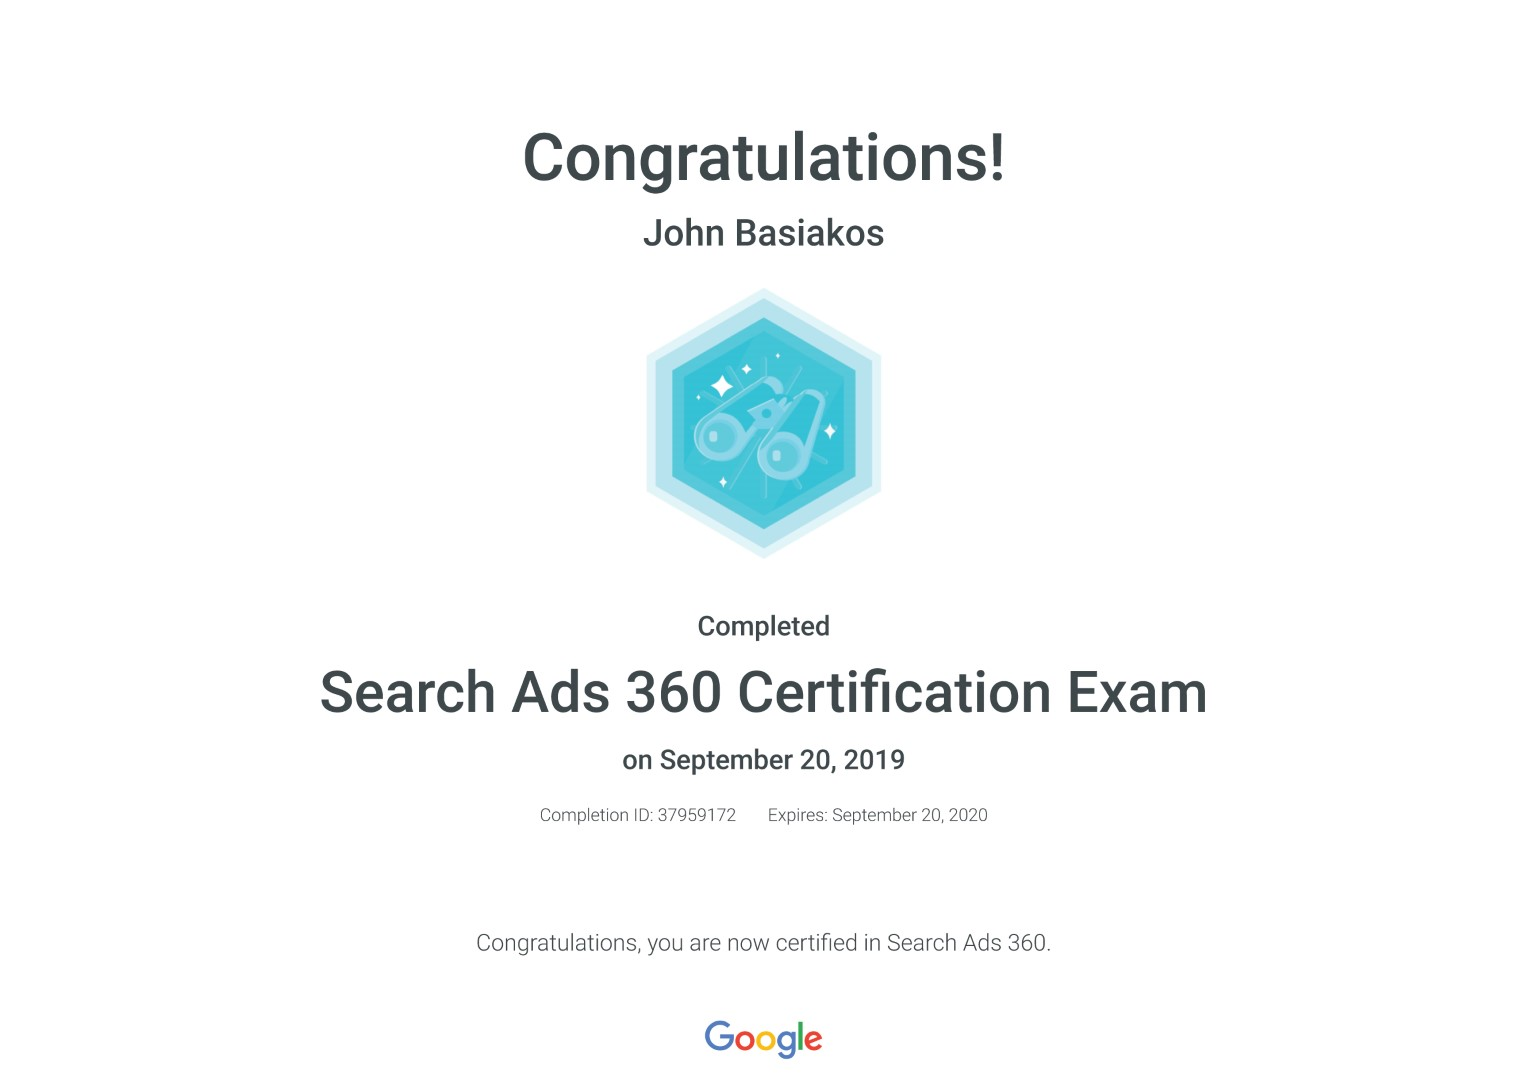 Search Ads 360 Certification Exam _ Google